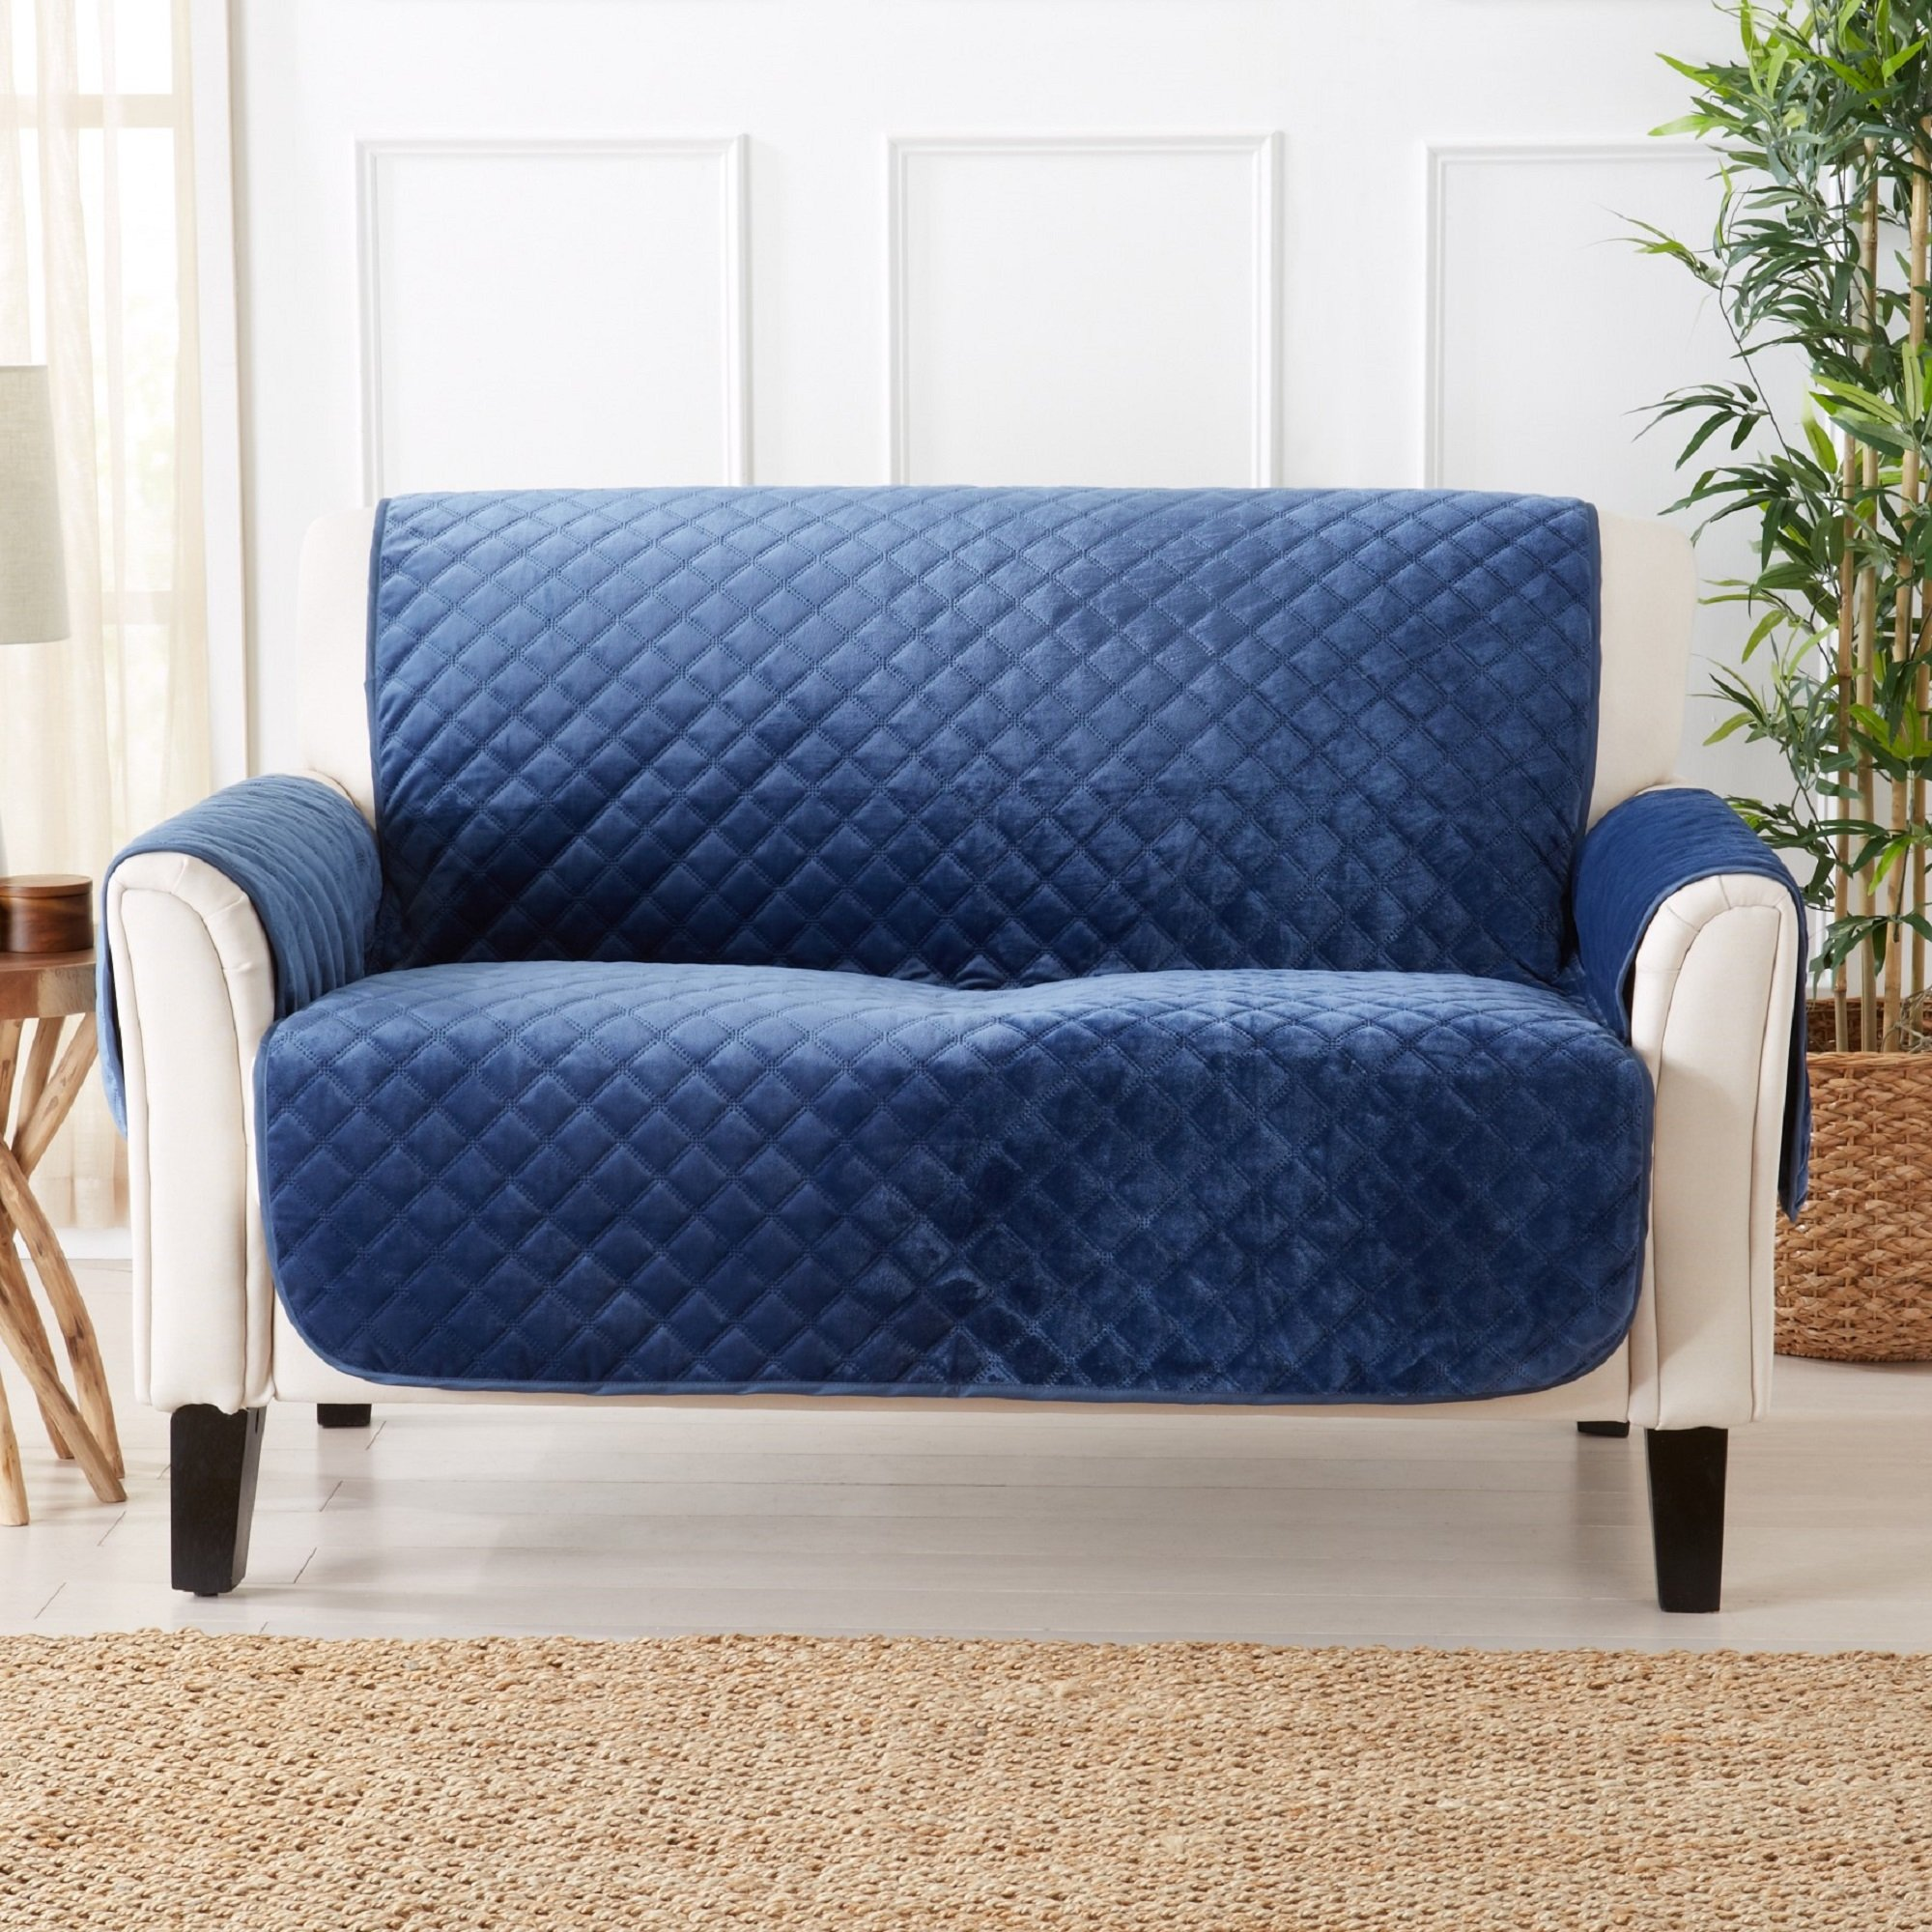 Great Bay Home Modern Velvet Furniture Protector. Stain Resistant, Durable, Machine Washable. Perfect for Pets, Dogs & Kids (Loveseat, Dark Denim Blue) by Great Bay Home